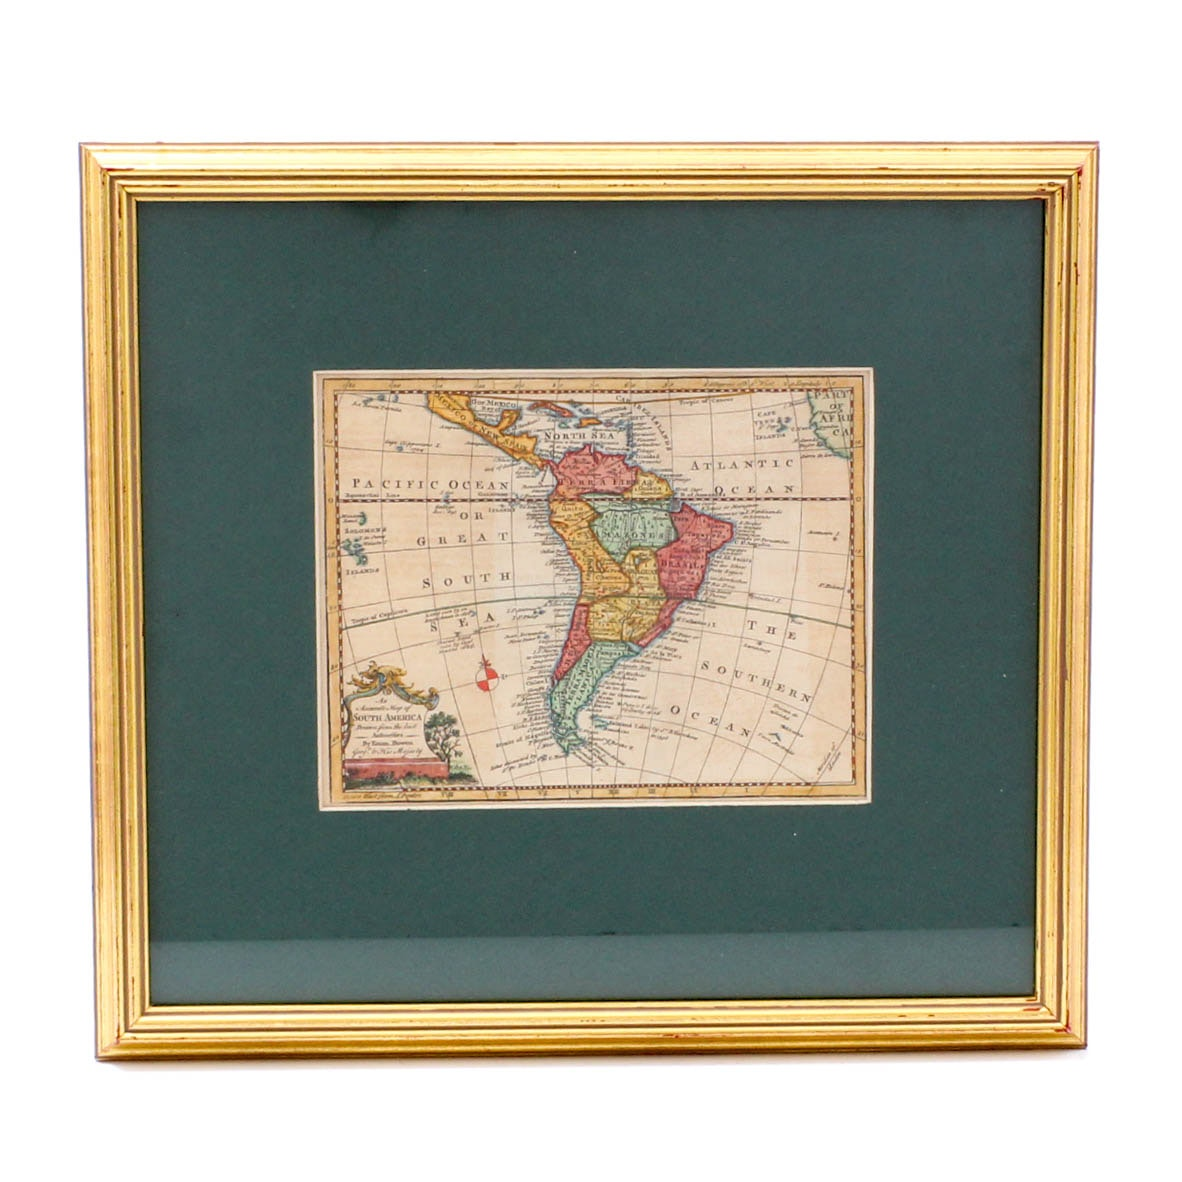 Circa 1750 Hand-Colored Engraving of South America by Emanuel Bowen